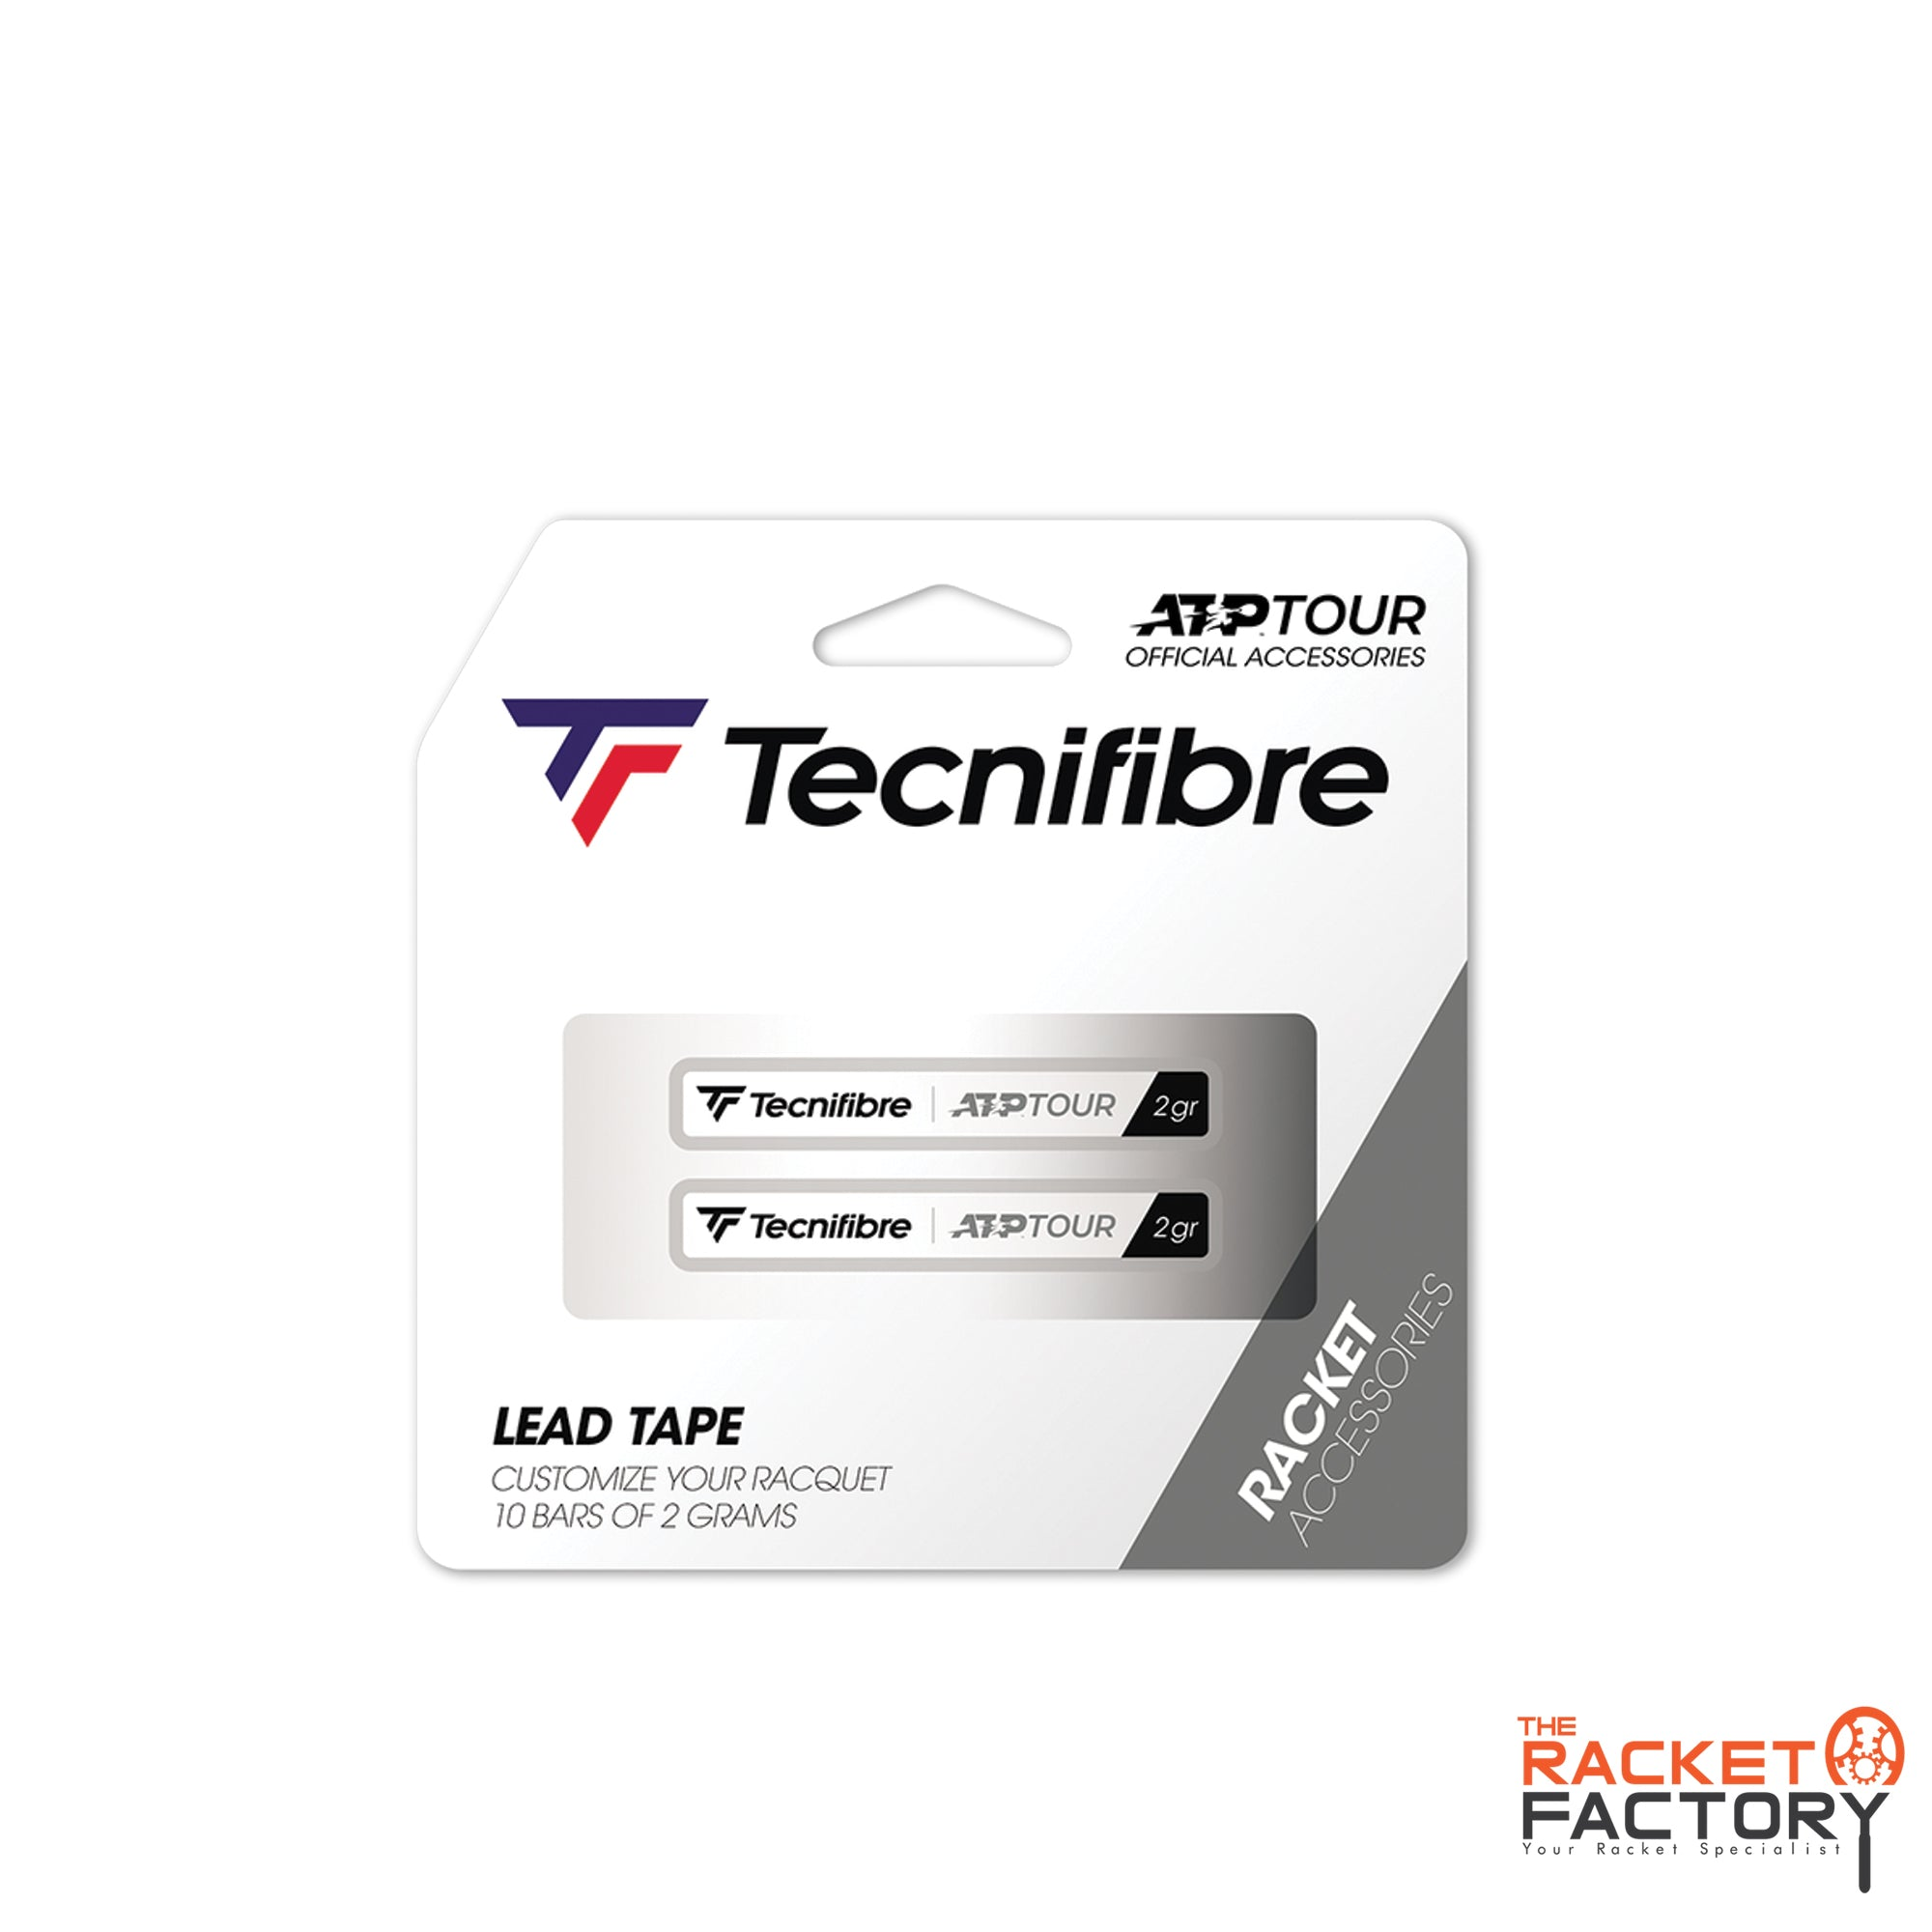 Tecnifibre Lead Tape Racket Accessory